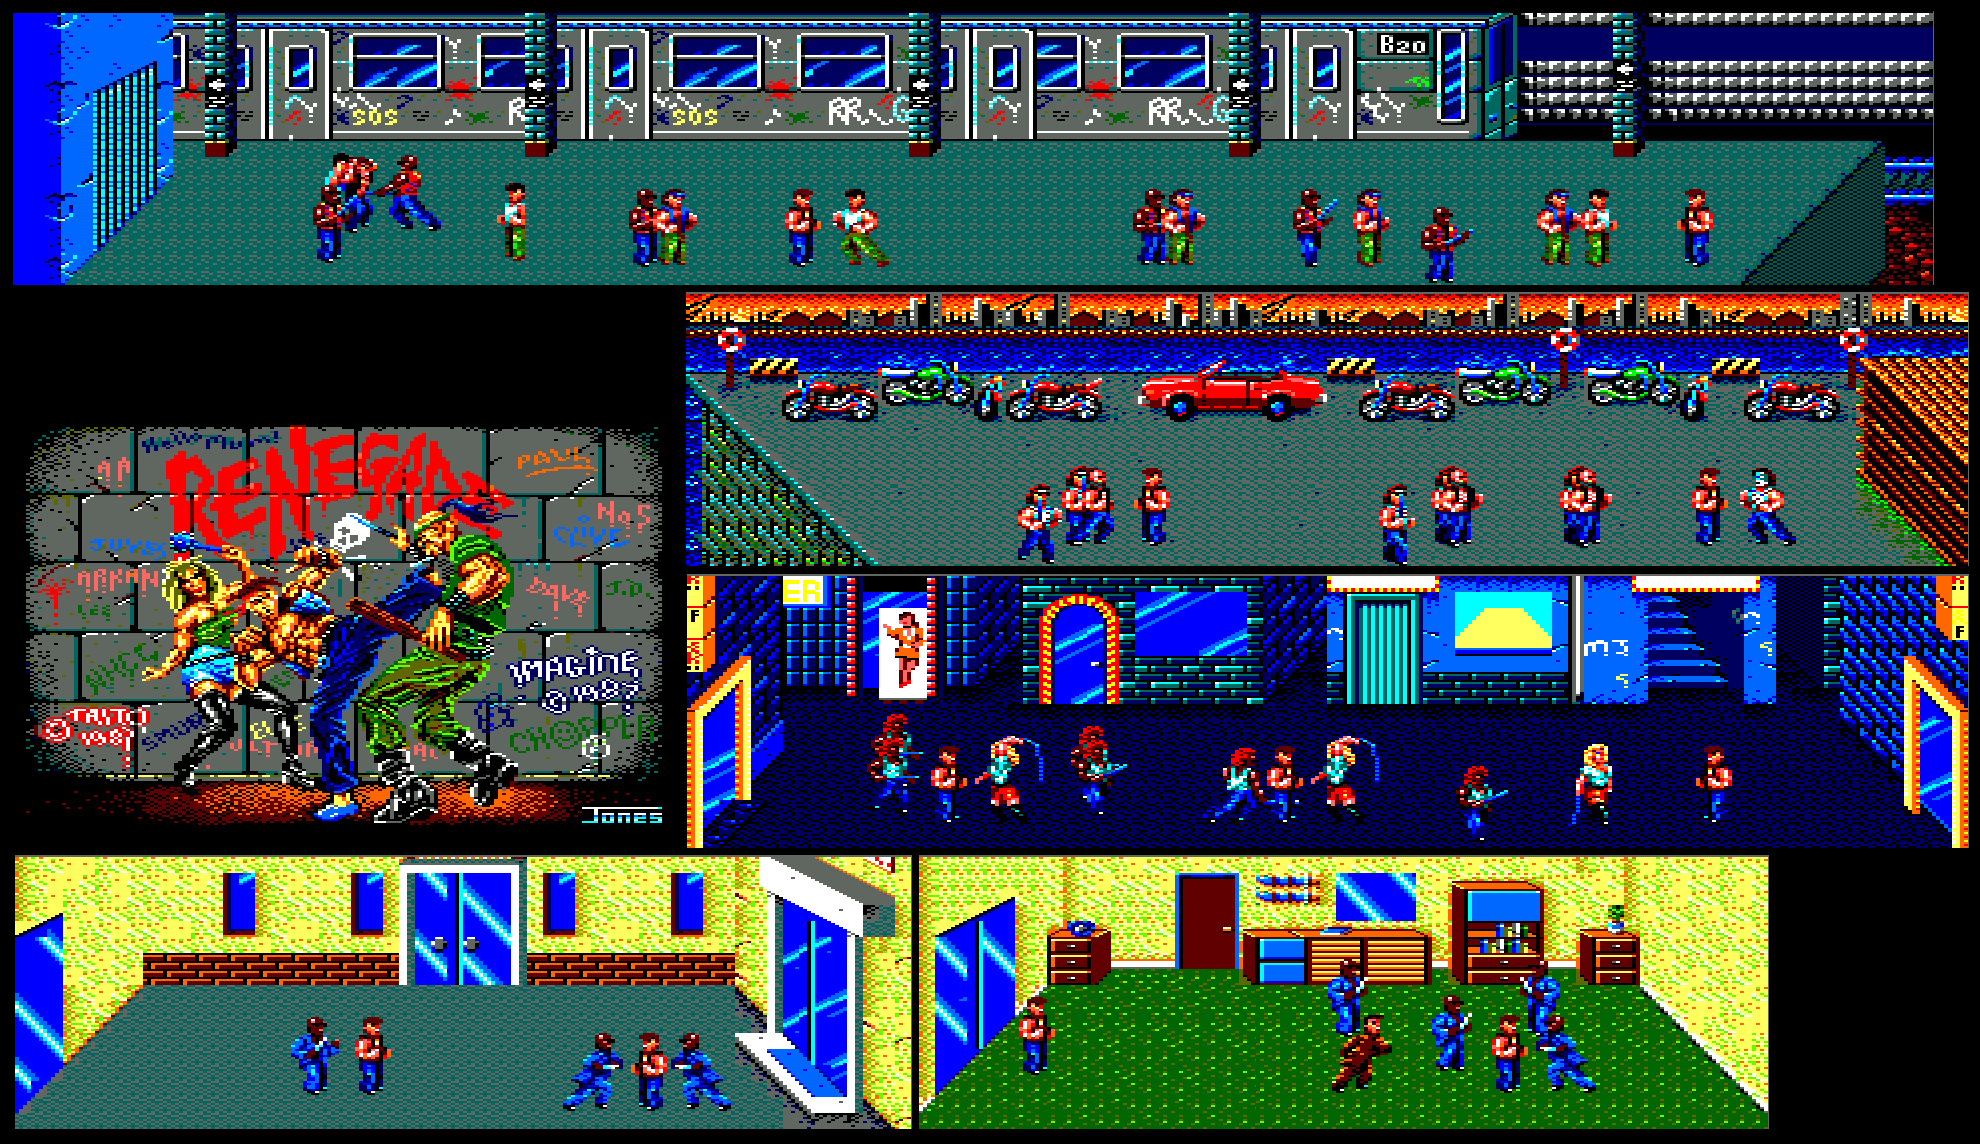 http://www.retrogamesmachine.com/wp-content/uploads/2013/07/renegade_cpc_-_mappa.png